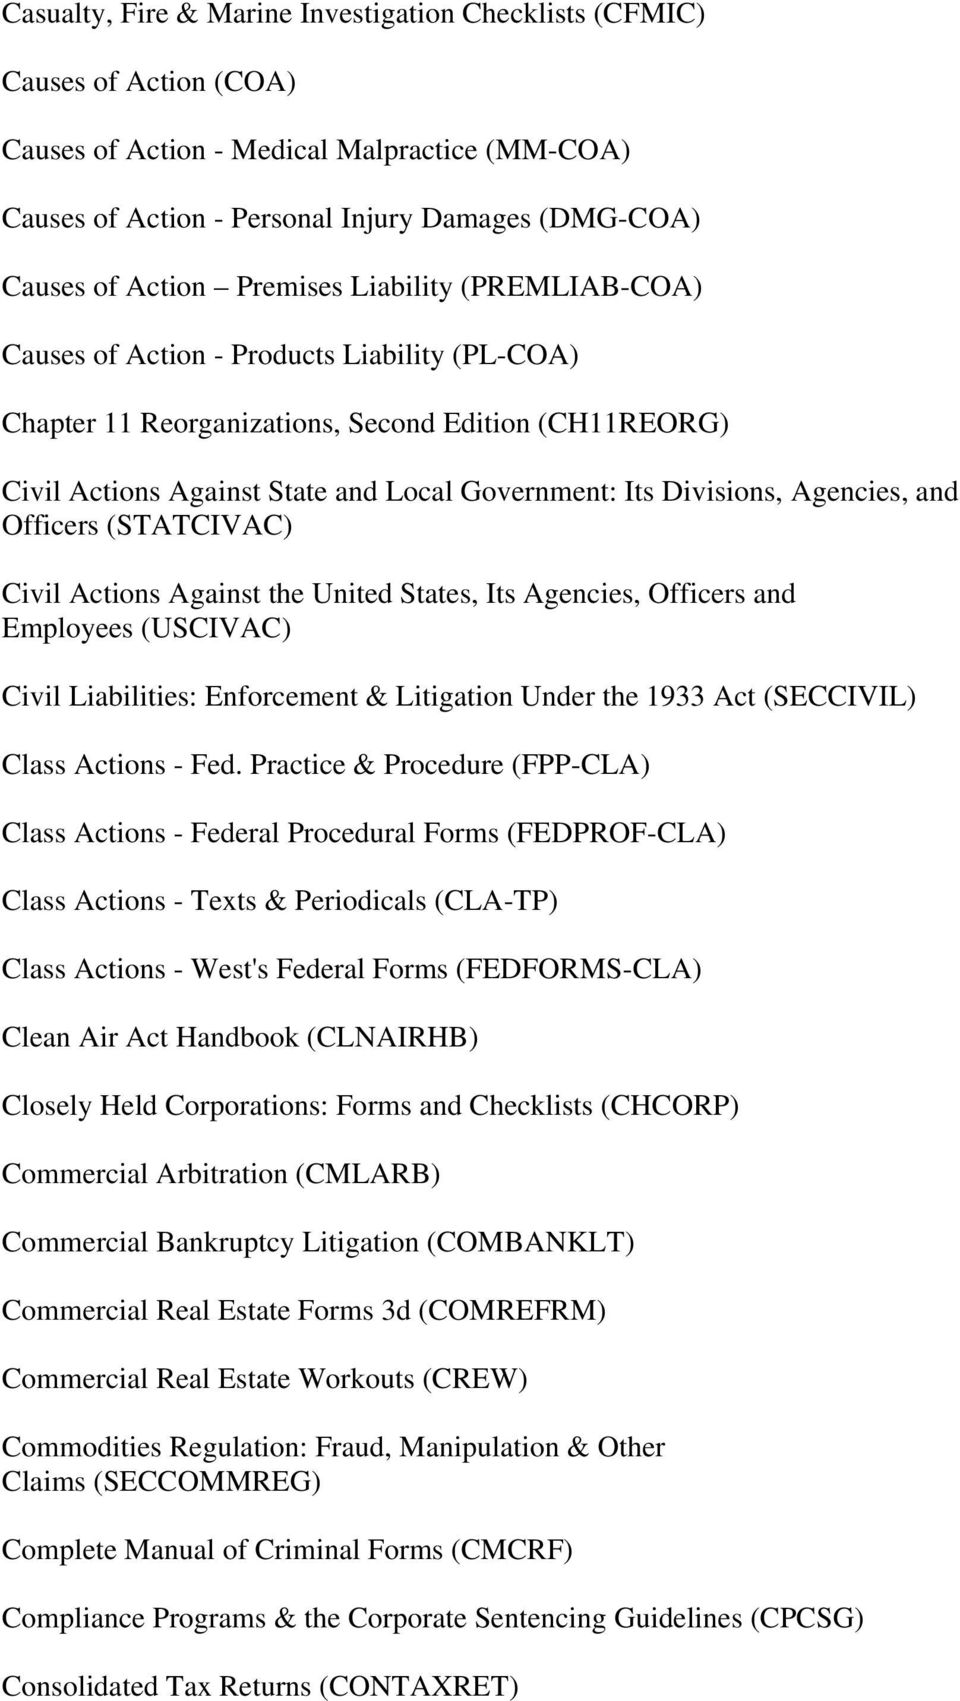 Divisions, Agencies, and Officers (STATCIVAC) Civil Actions Against the United States, Its Agencies, Officers and Employees (USCIVAC) Civil Liabilities: Enforcement & Litigation Under the 1933 Act